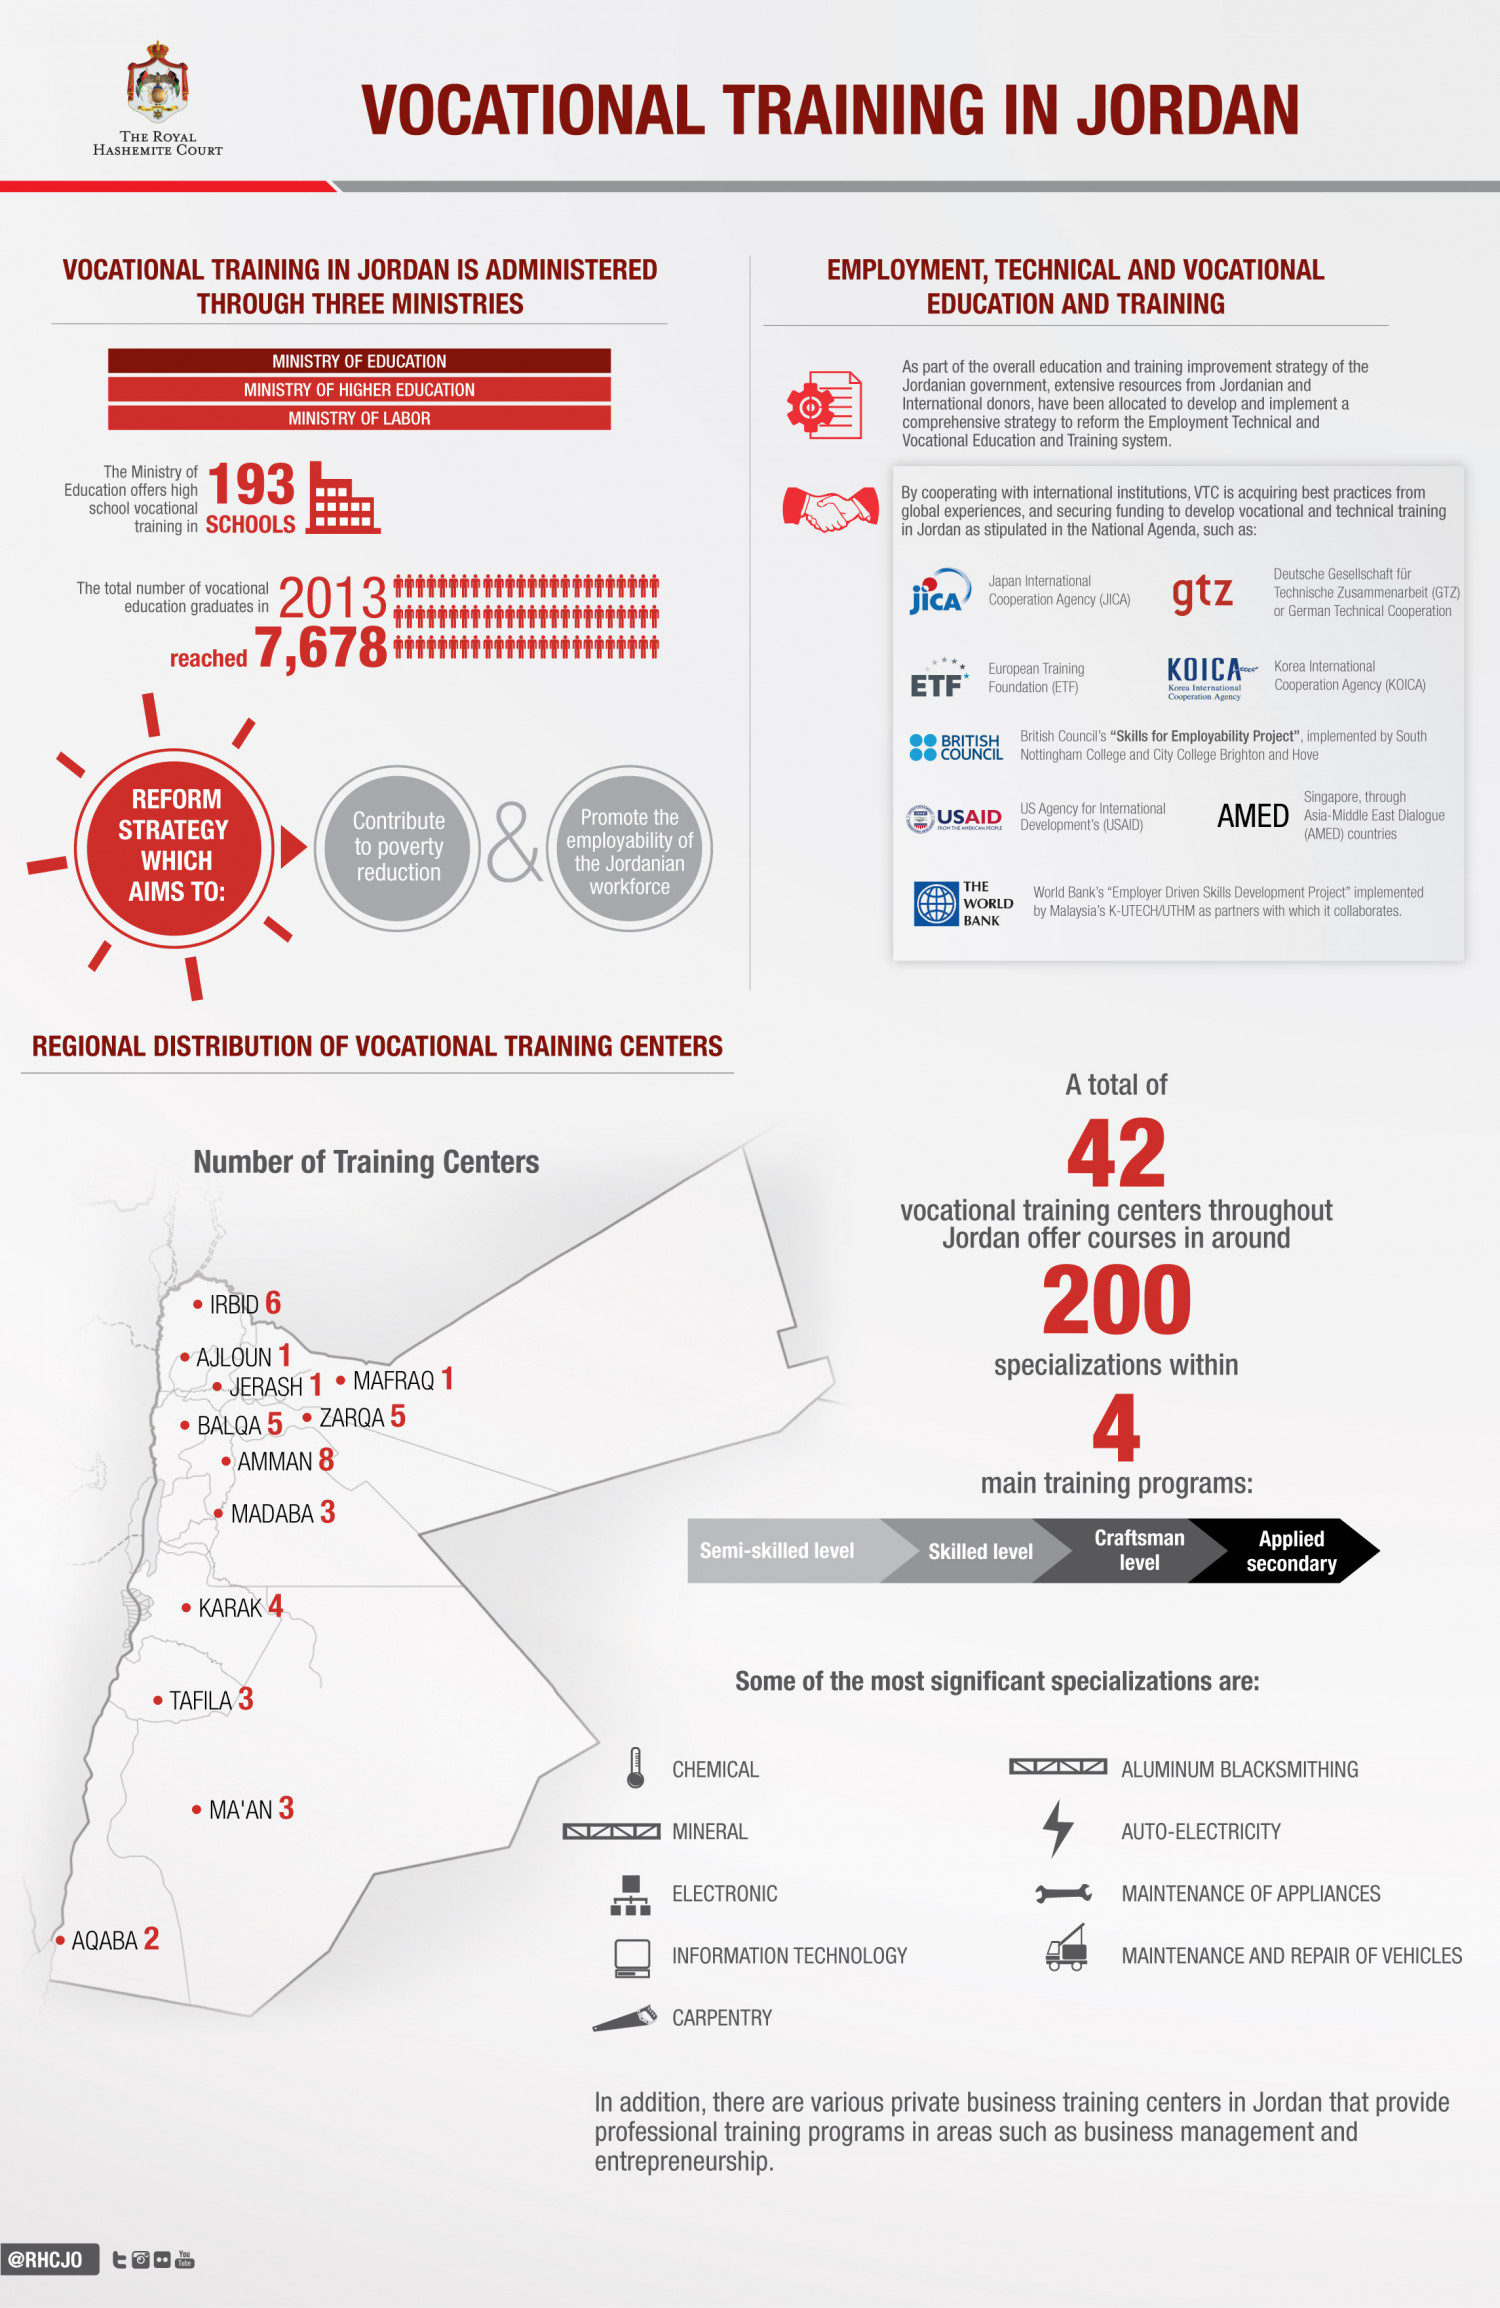 Vocational Training in Jordan Infographic